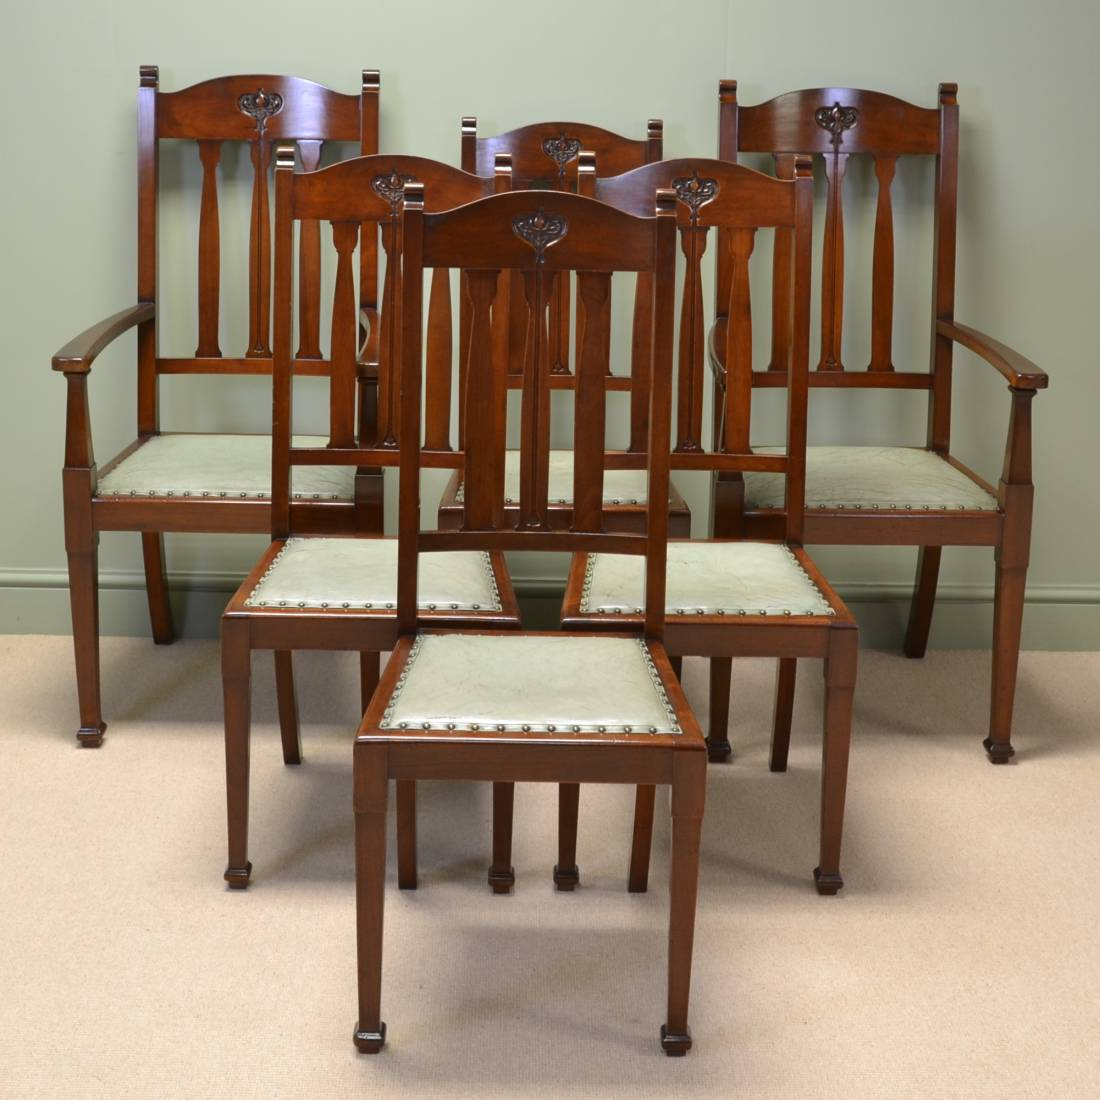 Antique victorian dining chairs - Spectacular Quality Set Of Six Walnut Arts And Crafts Victorian Dining Chairs